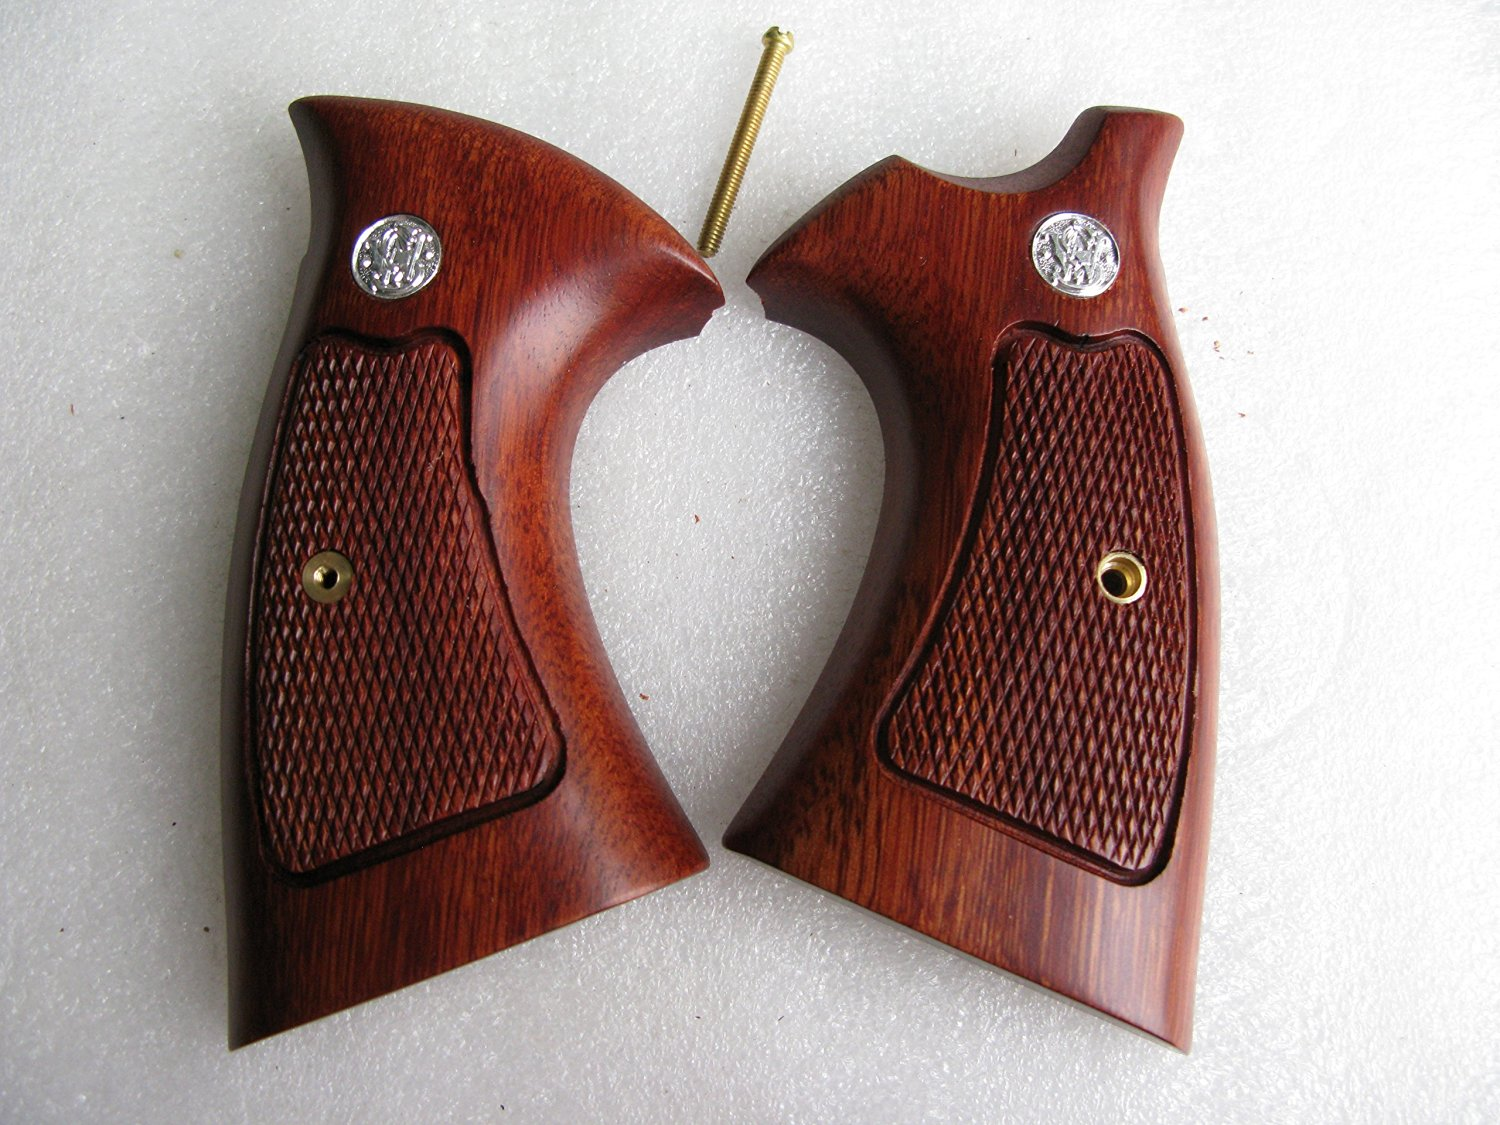 Revolver smith grips and wesson Smith &